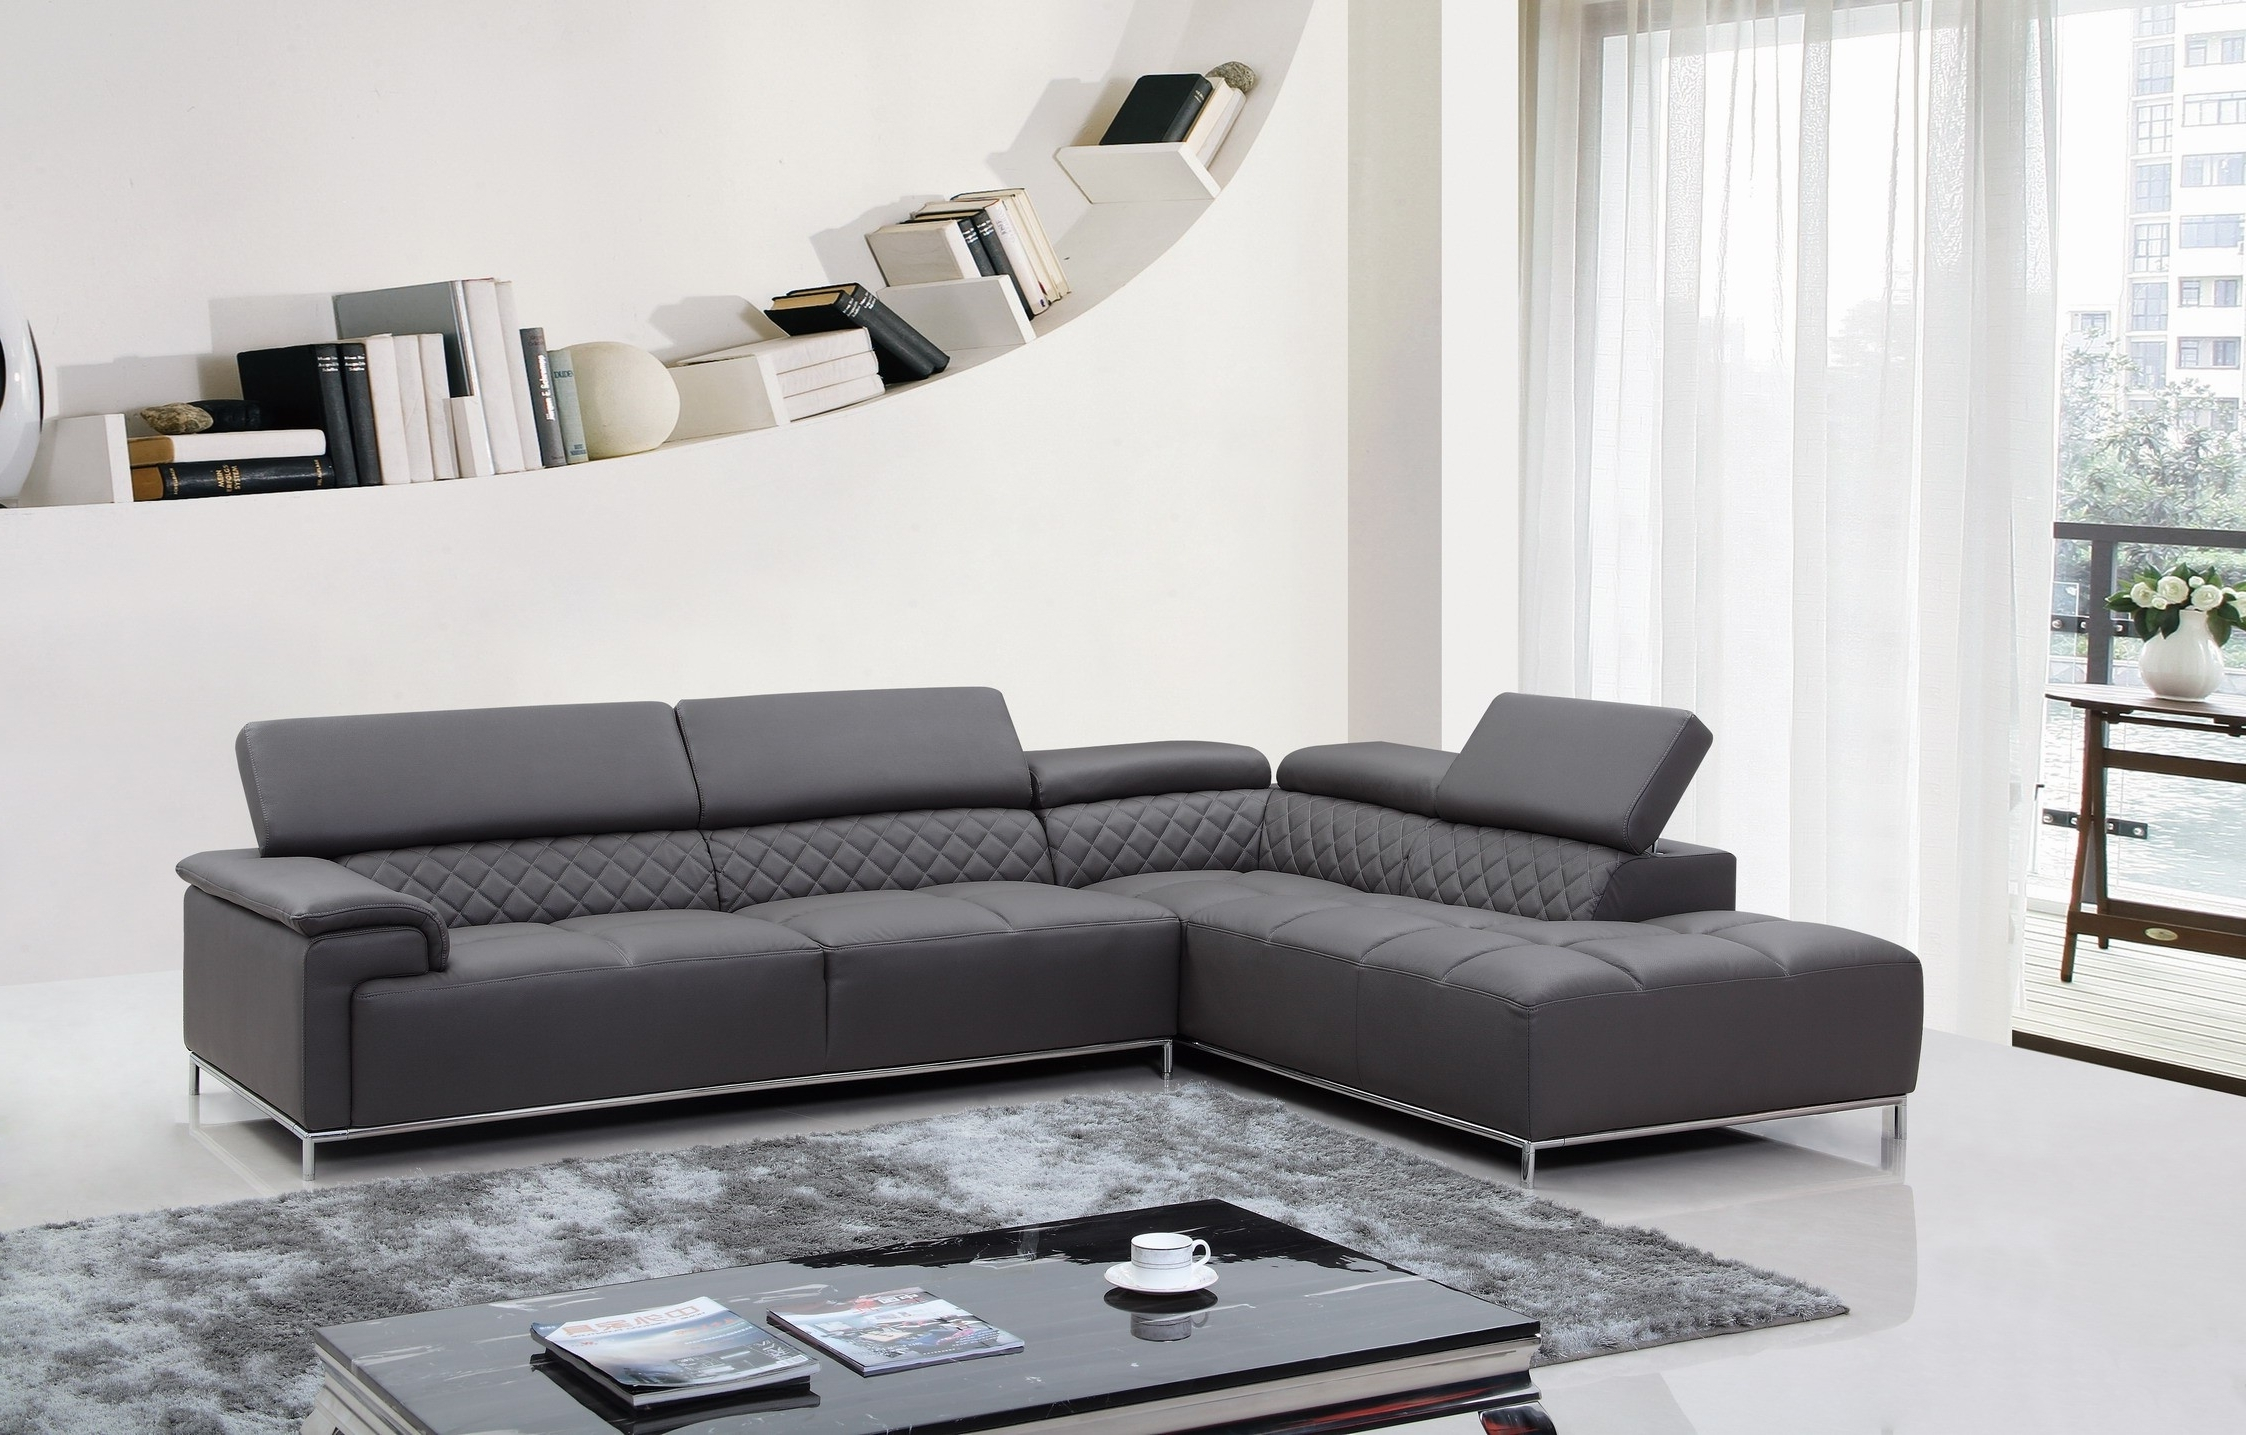 Big Lots Outdoor Furniture Modular Sectional Sofa Sectional Sofas In Well Known Leather Modular Sectional Sofas (View 1 of 20)